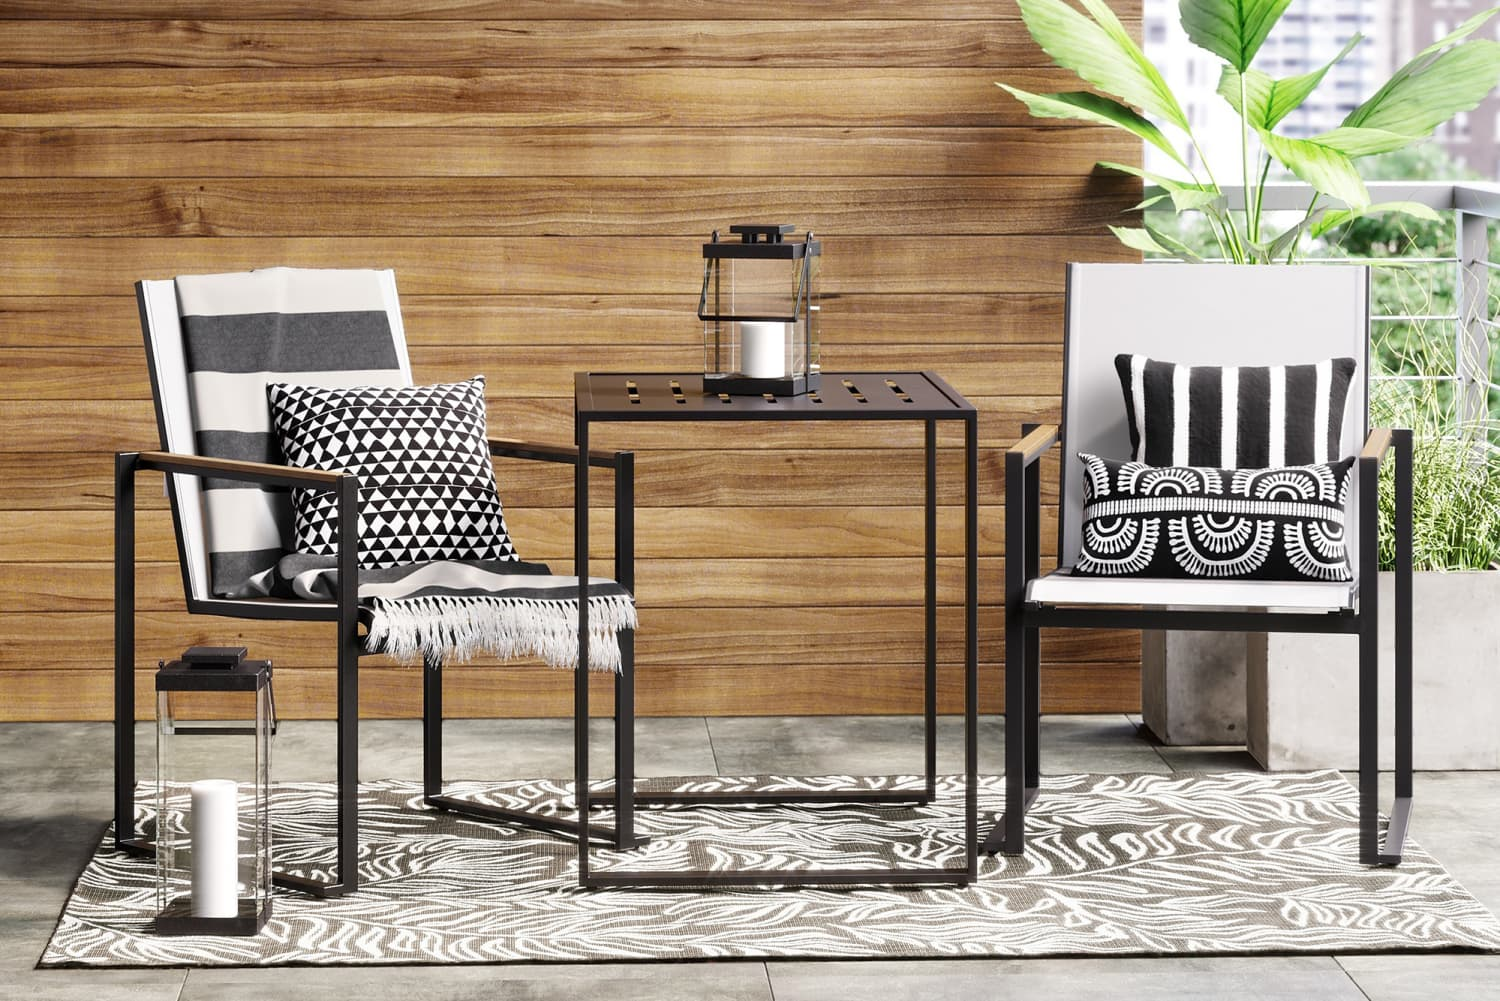 Small Space Outdoor Furniture For Patios And Balconies